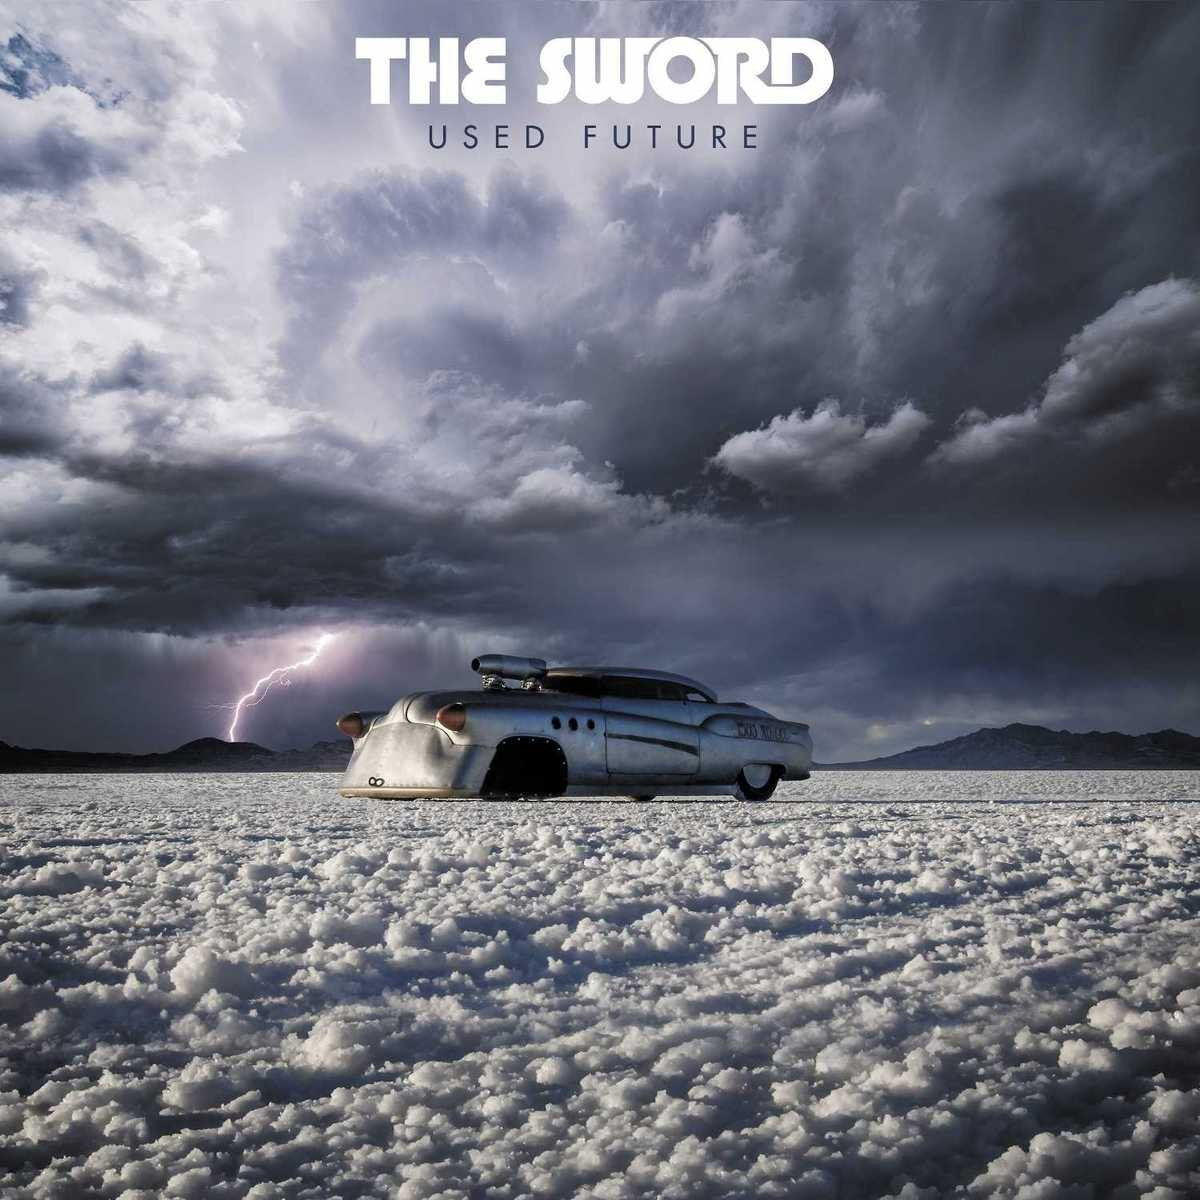 Sword, The/Used Future [CD]